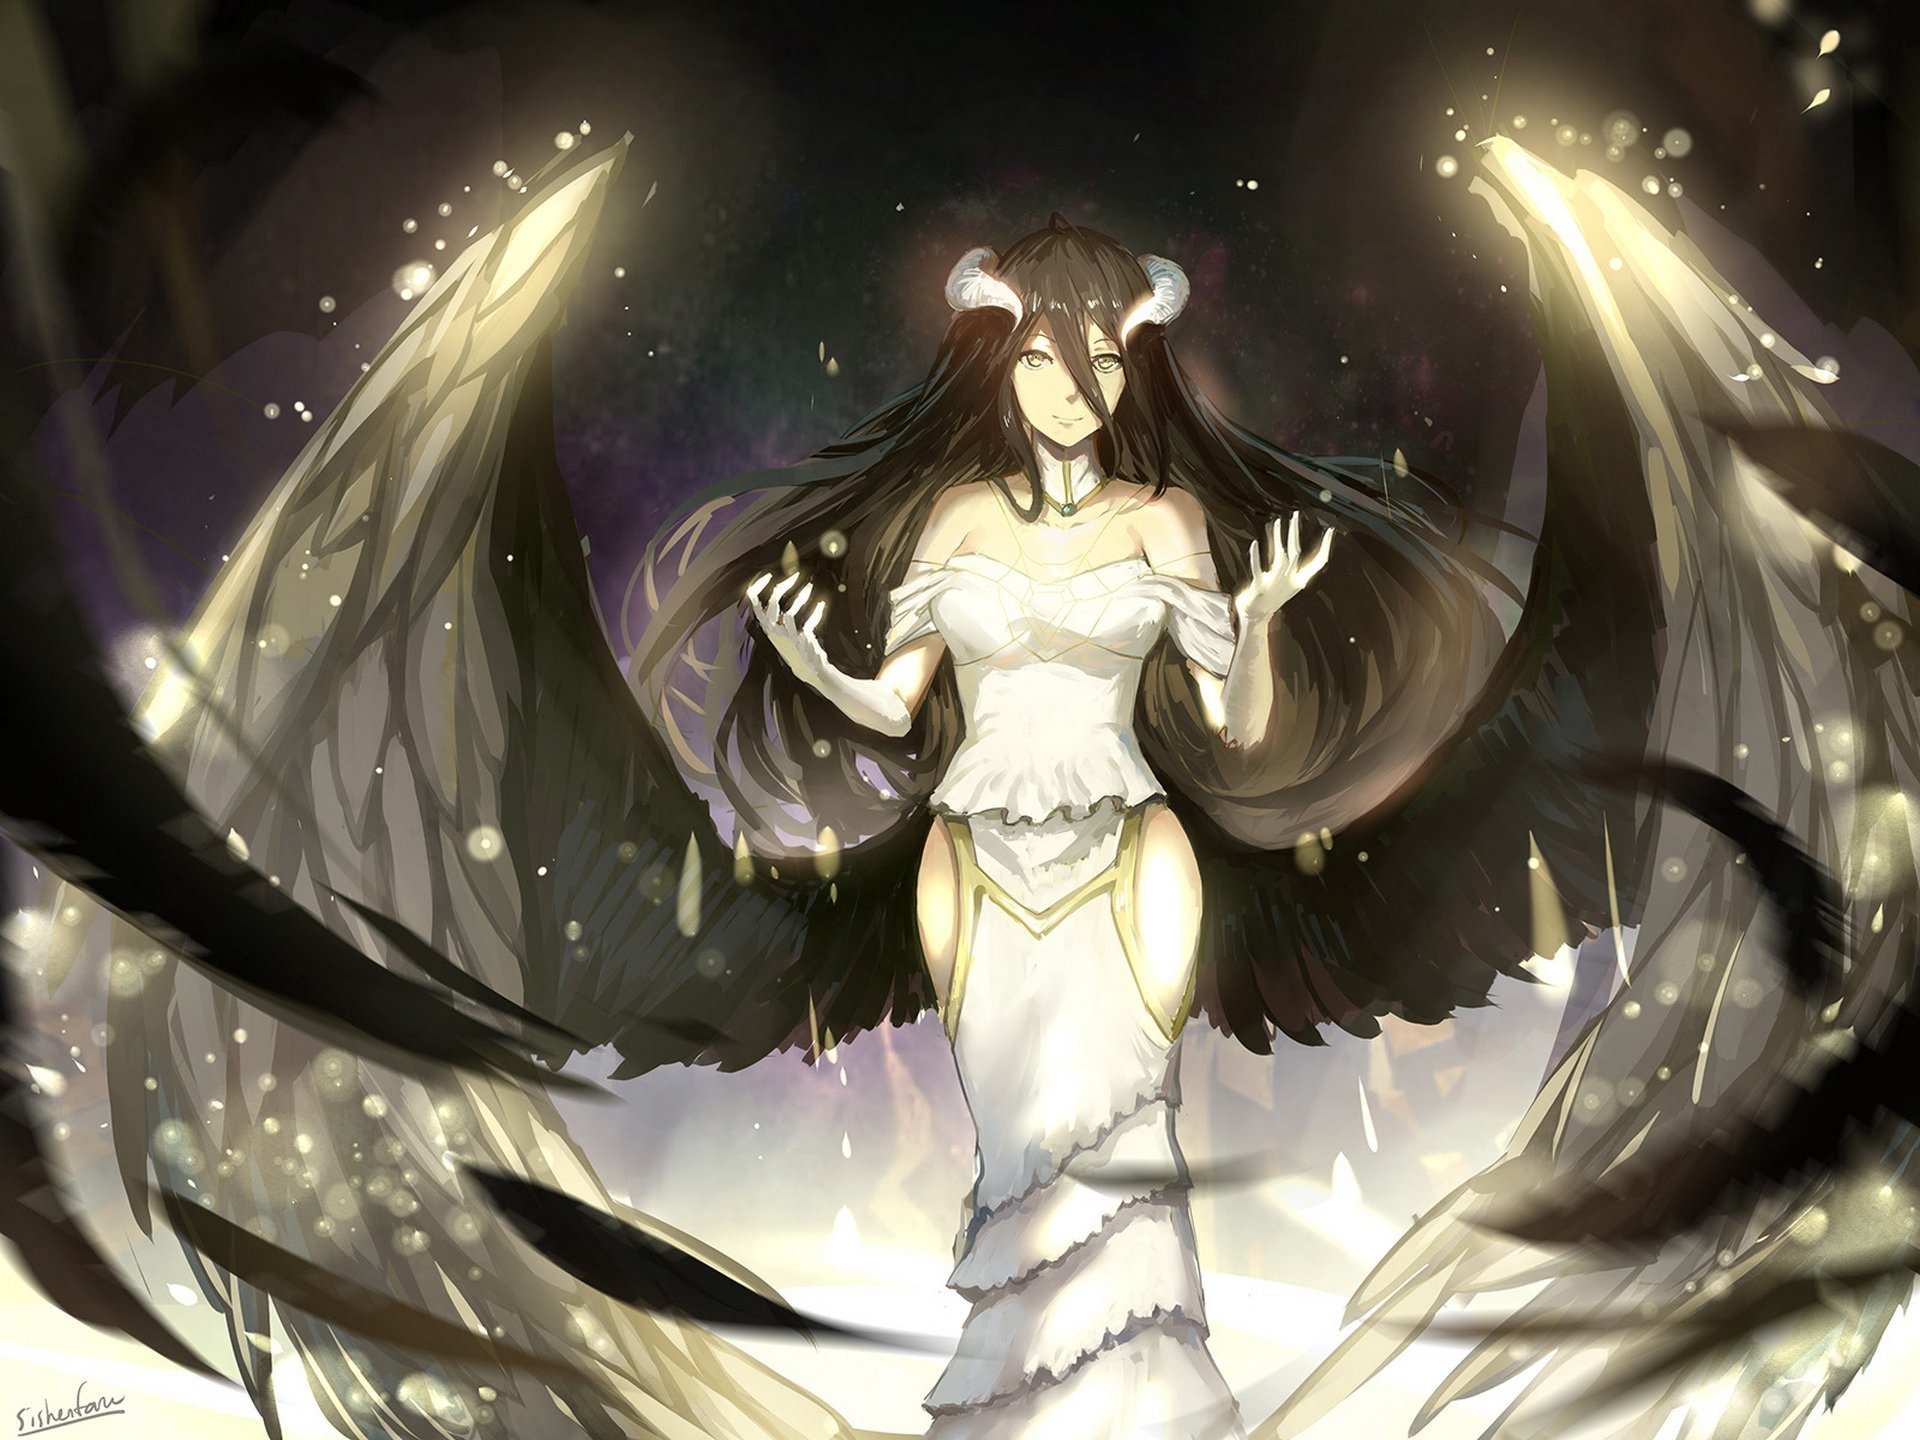 High resolution Albedo (Overlord) hd 1920x1440 wallpaper ID:275910 for PC